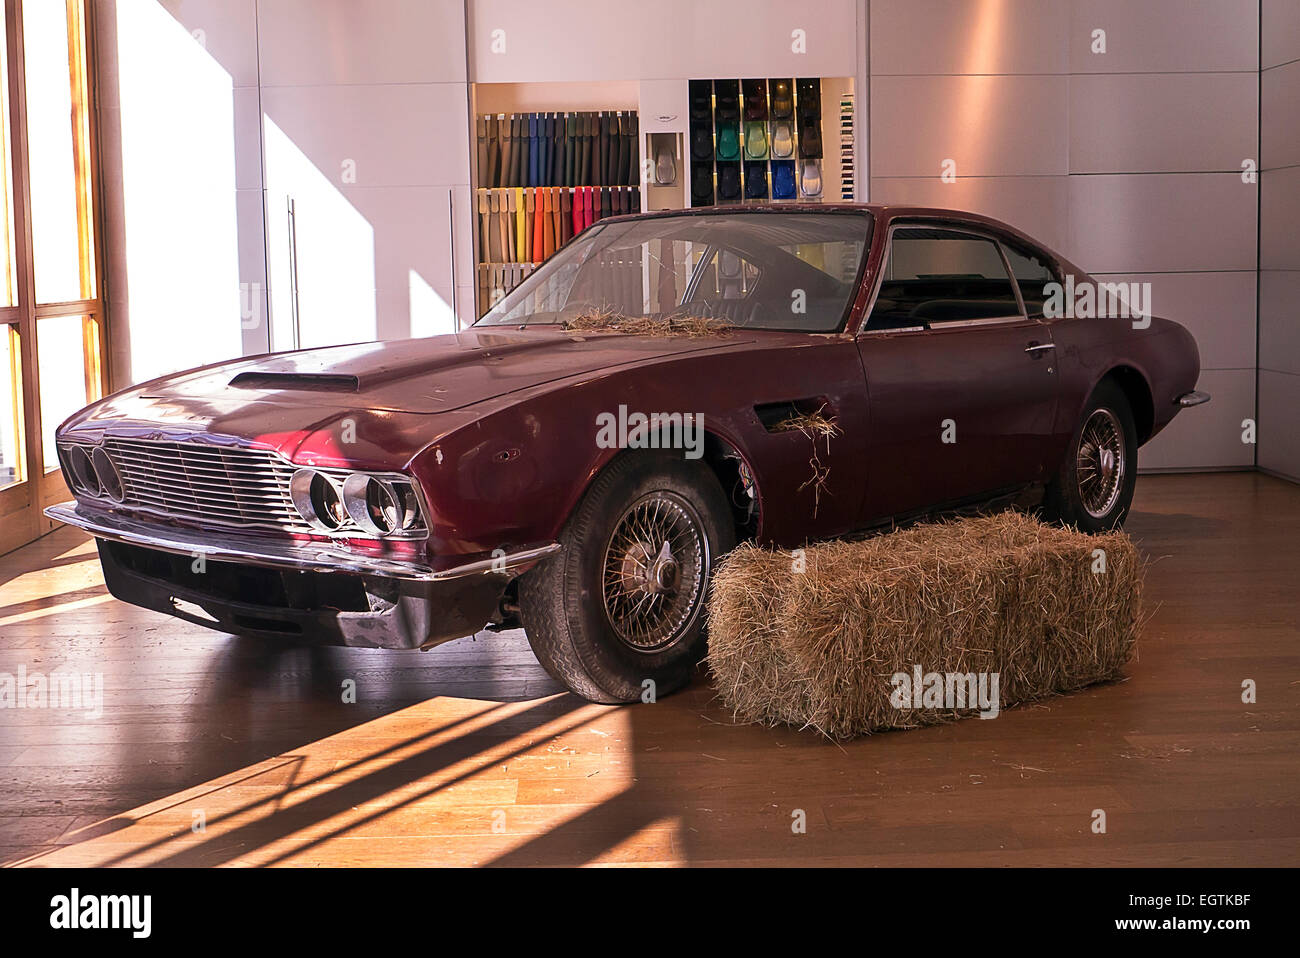 London UK 02nd Mar 2015 1972 Aston Martin DBS Last Car Of The Model Produced Barn Find With 40000 Miles On Odometer To Be Auctioned By Coys At